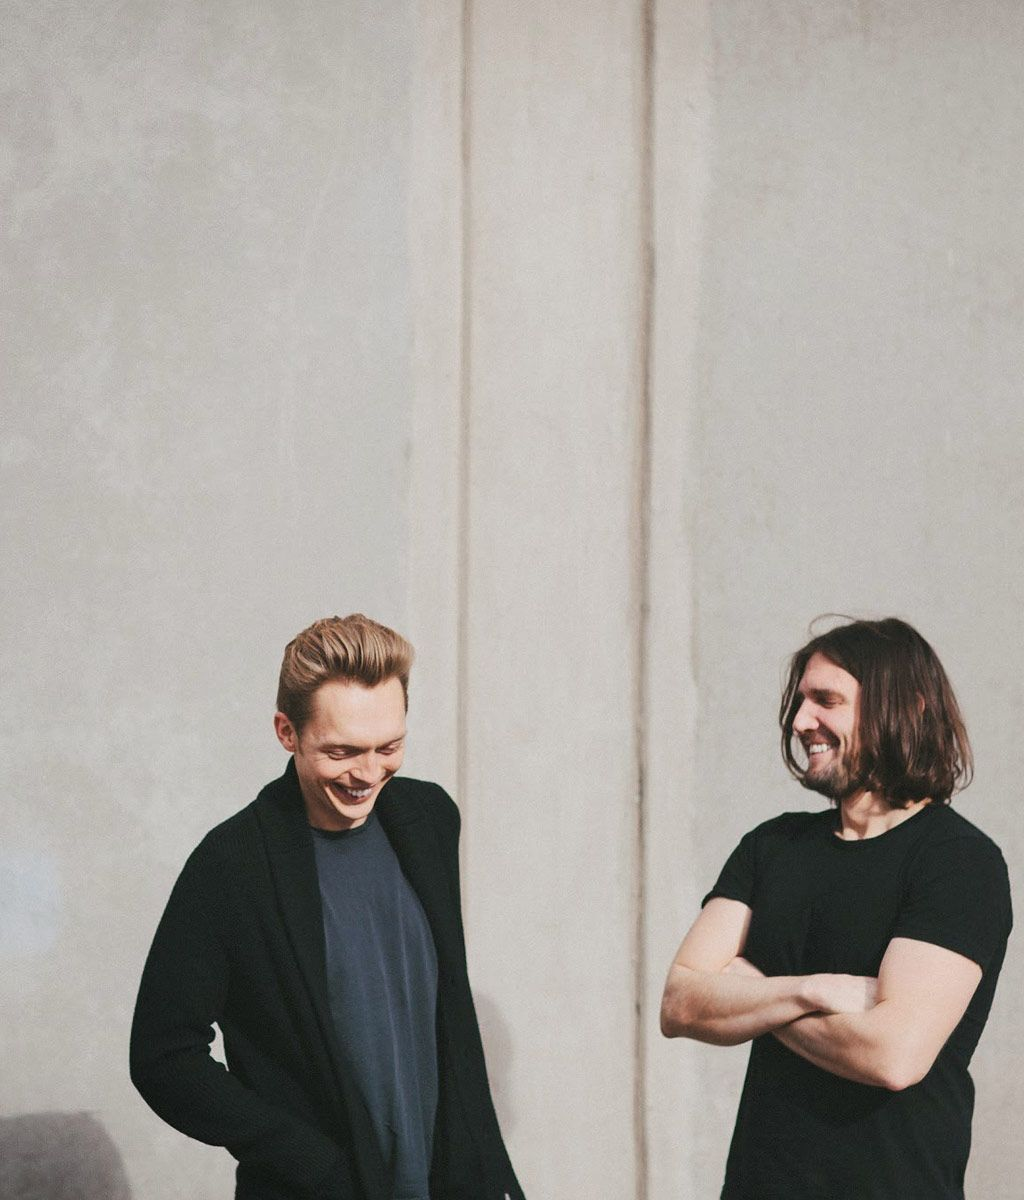 Profile: The Minimalists, Ryan Nicodemus and Joshua Millburn